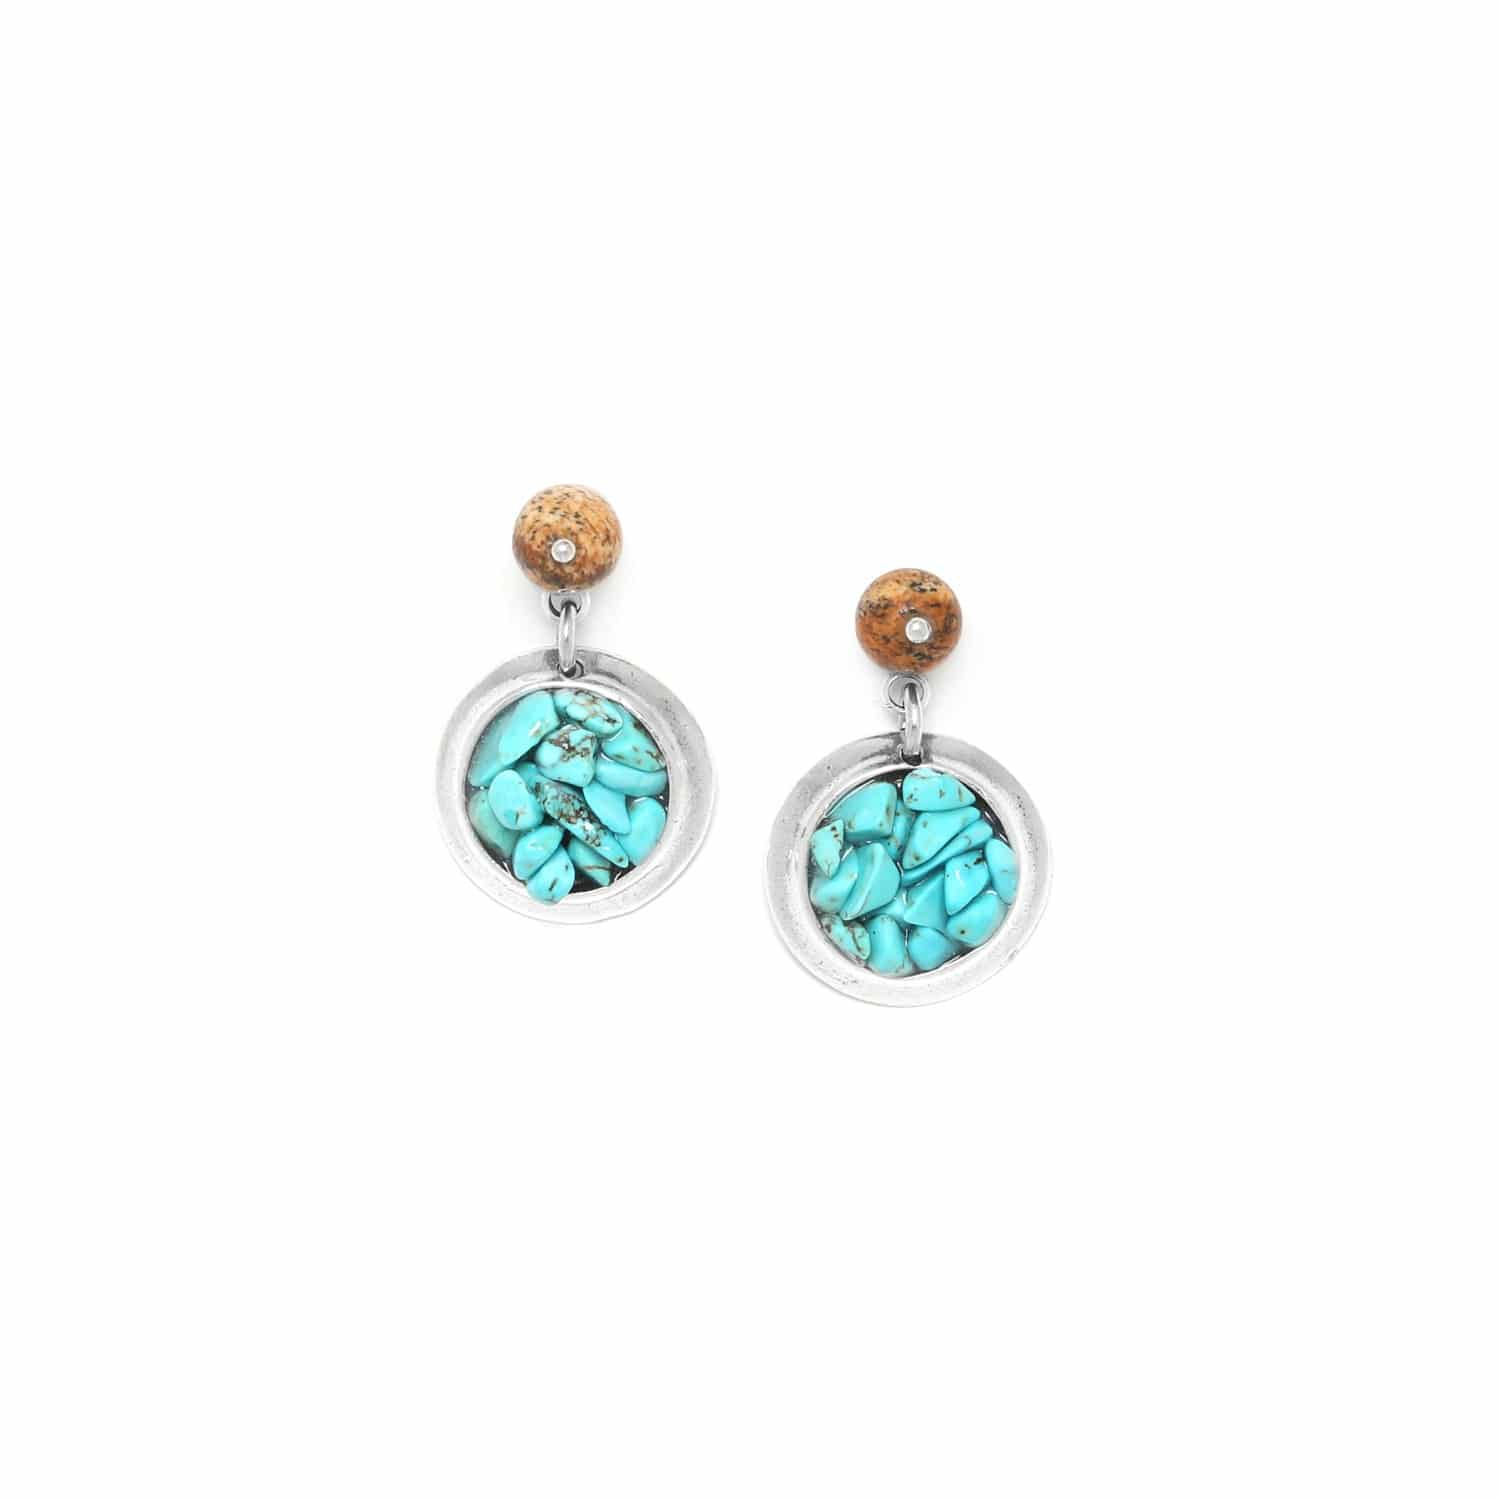 COLORADO turquoise chips mini earrings